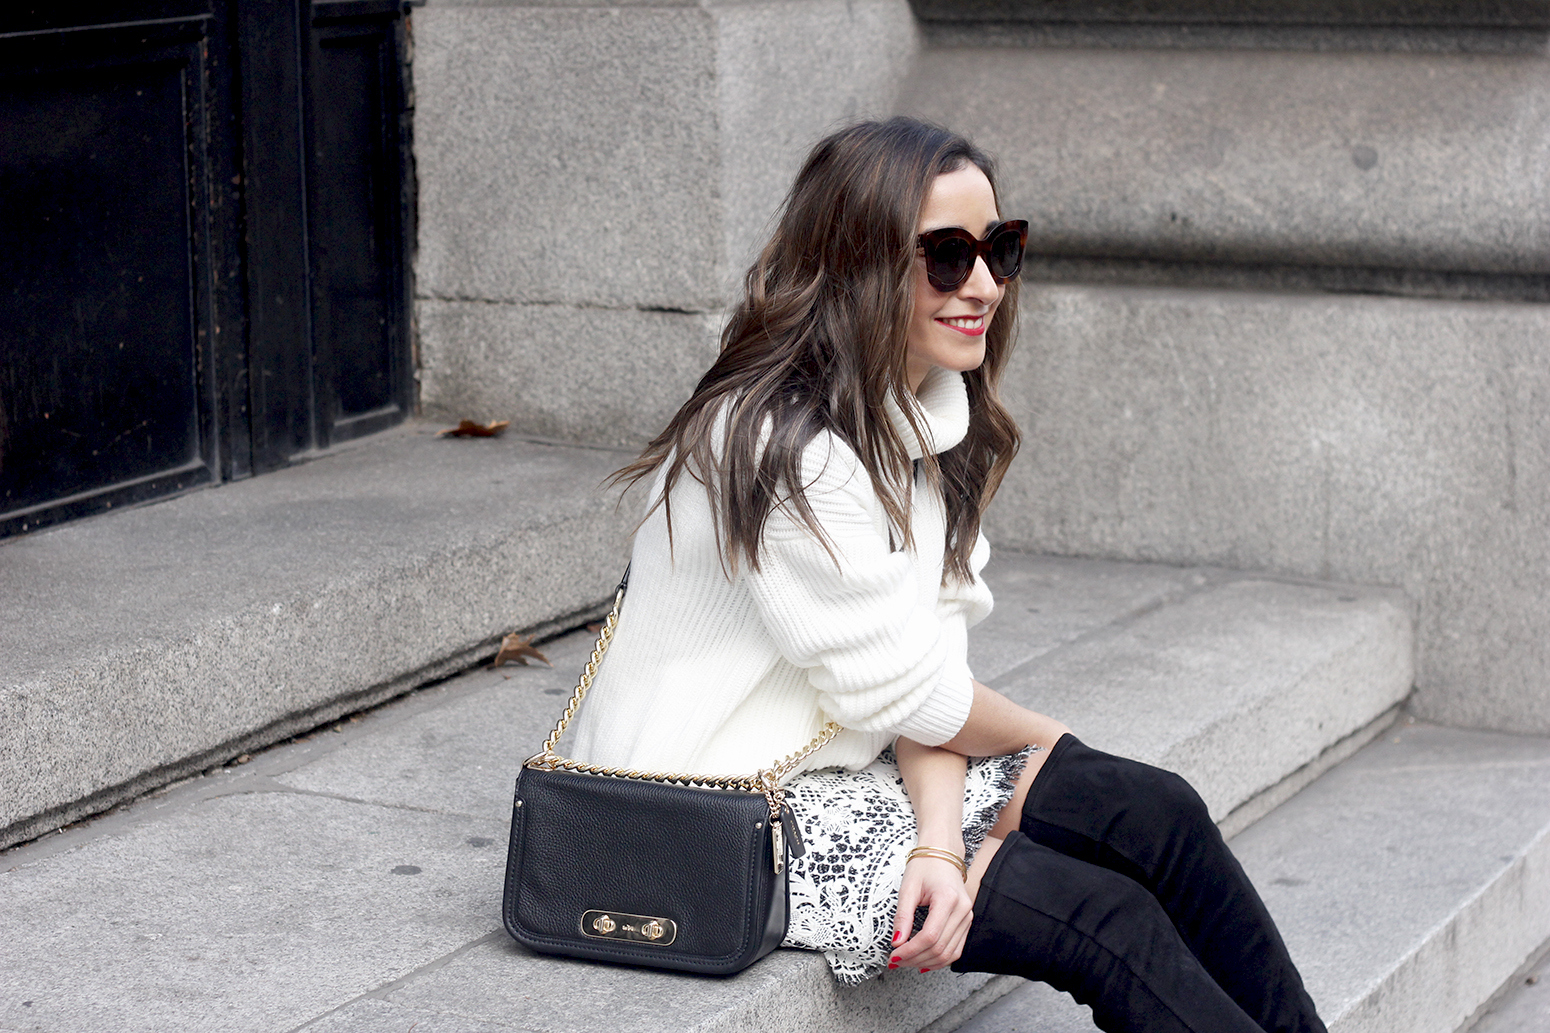 black and white lace skirt over the knee boots white turtleneck jersey outfit style winter12